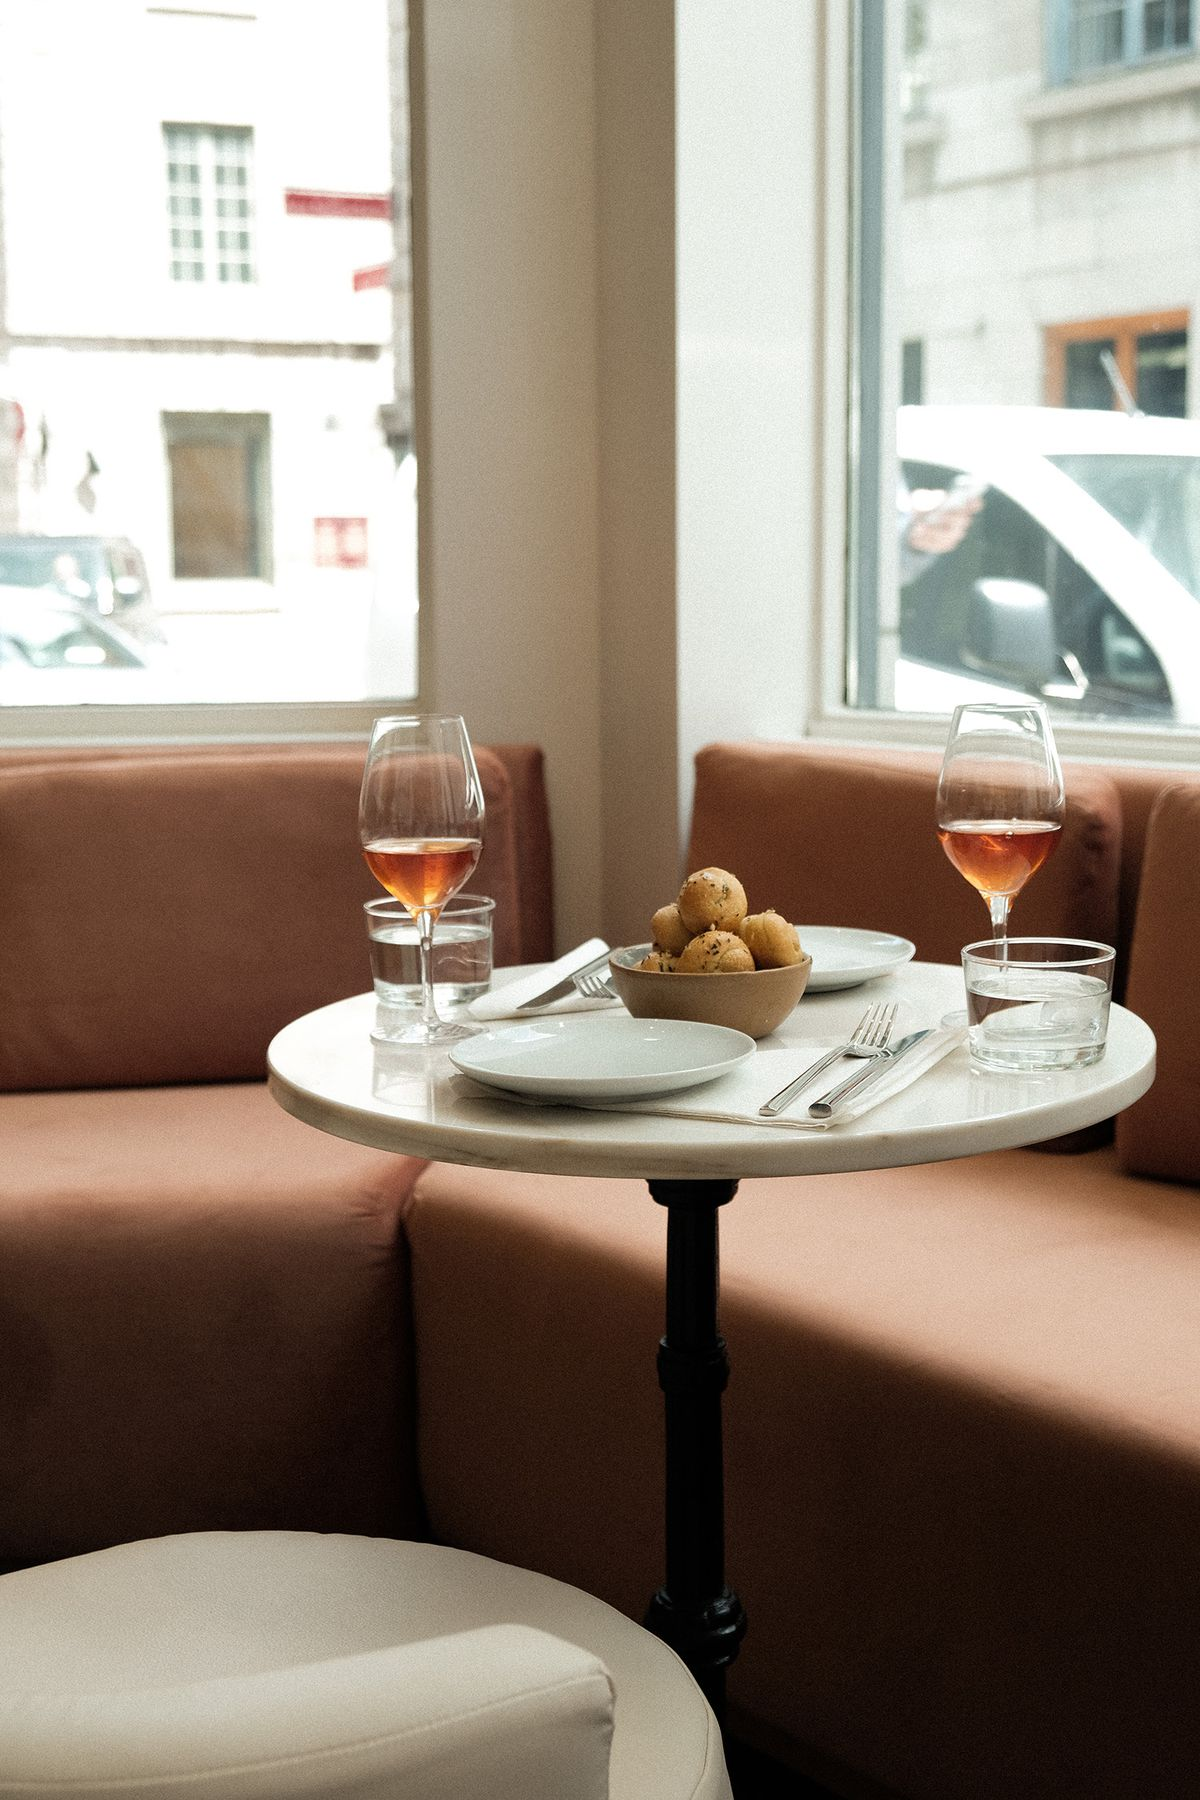 bistro table with wine and food